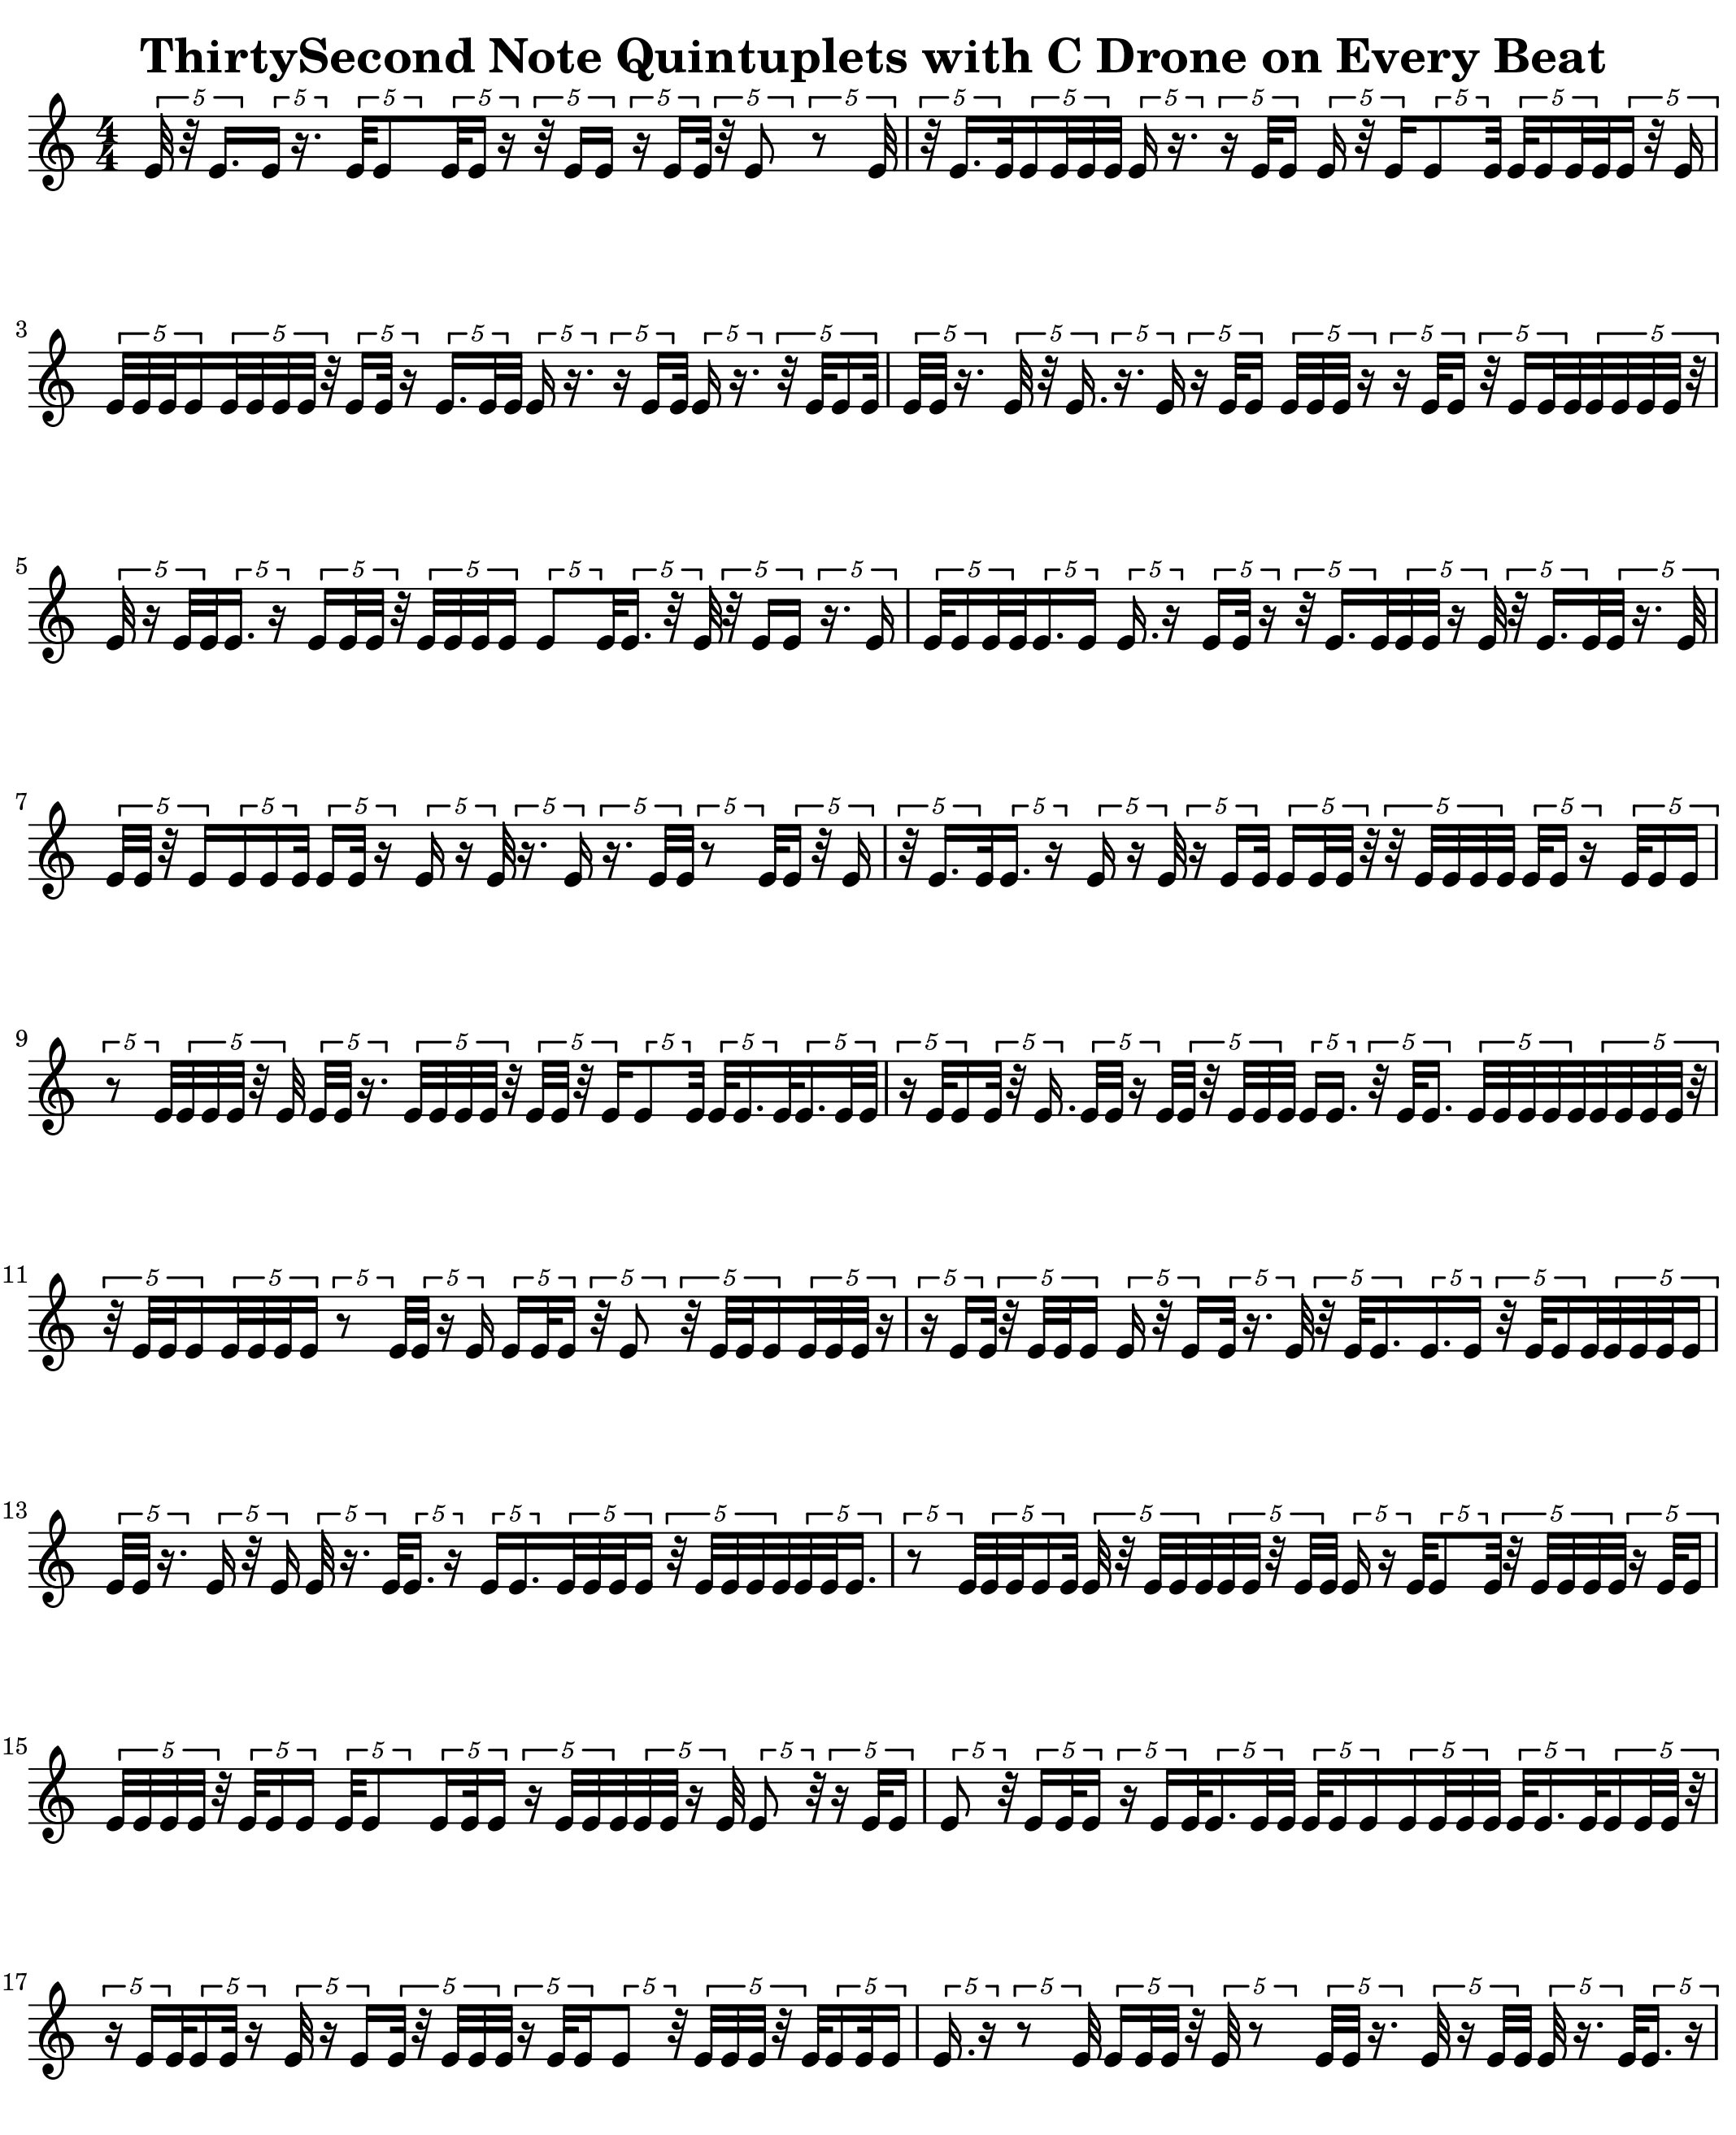 Rhythms V6 Thirty Second Note Quintuplet